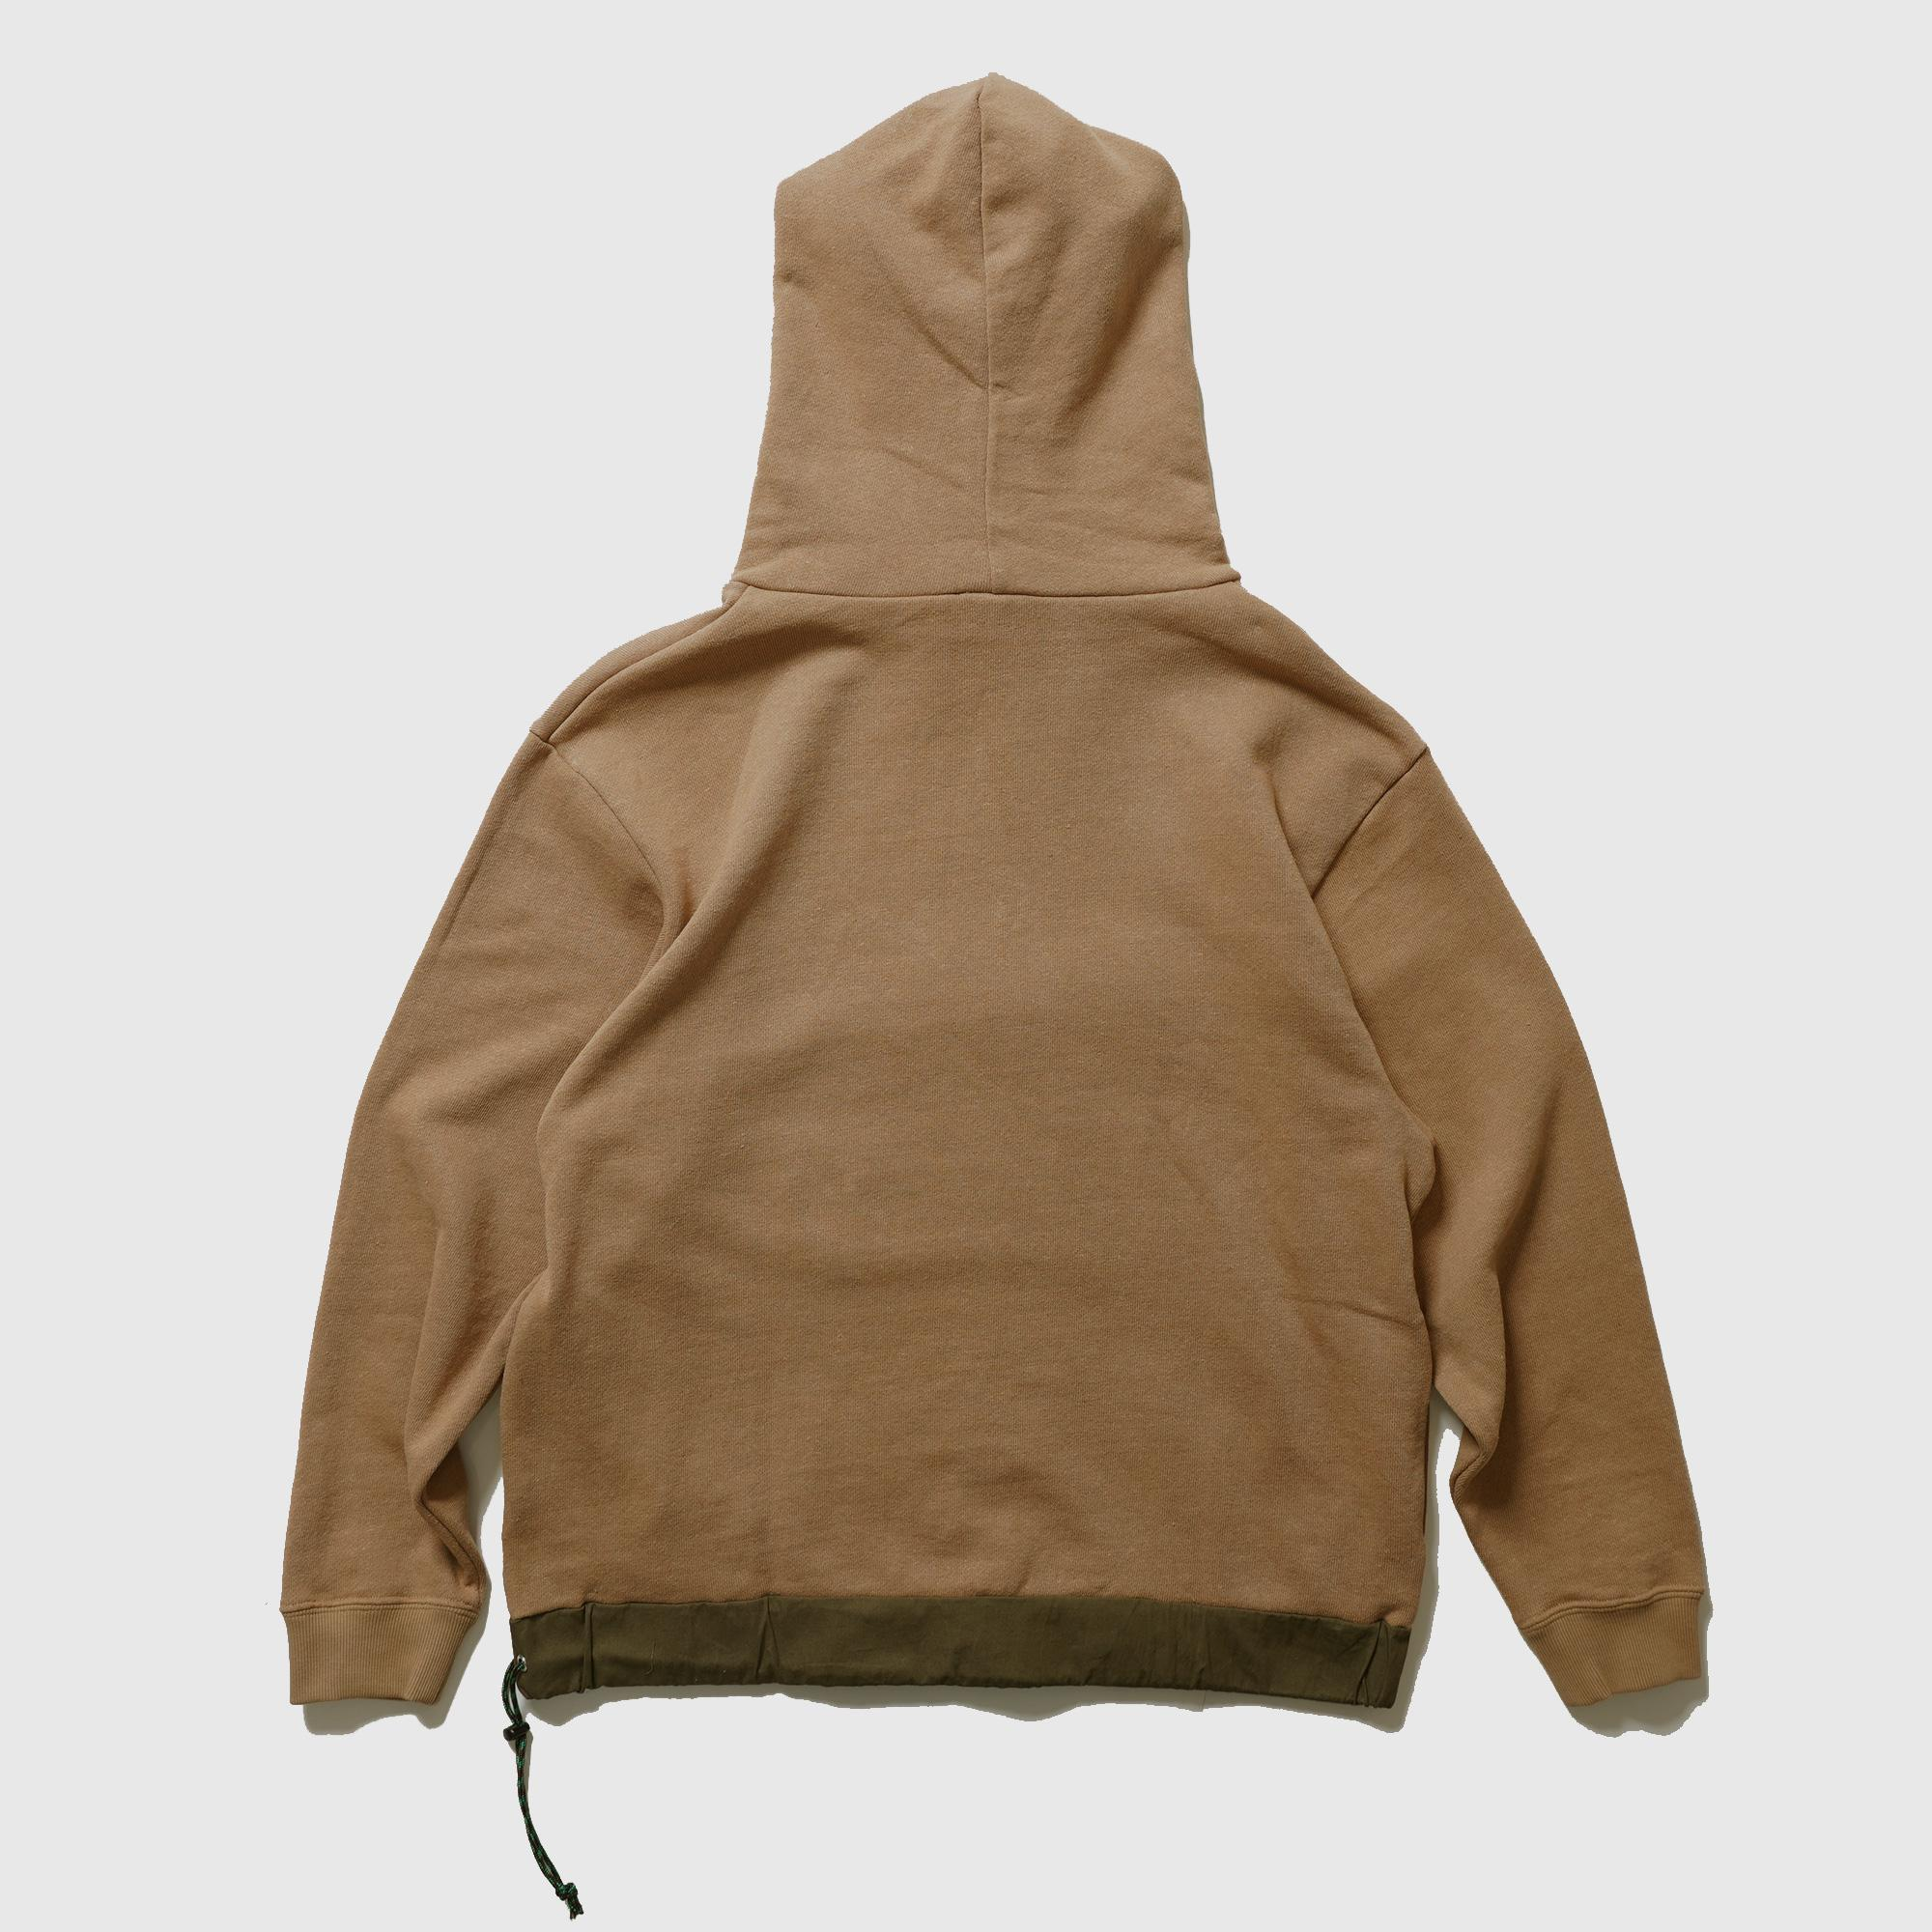 WITH PK HOODY